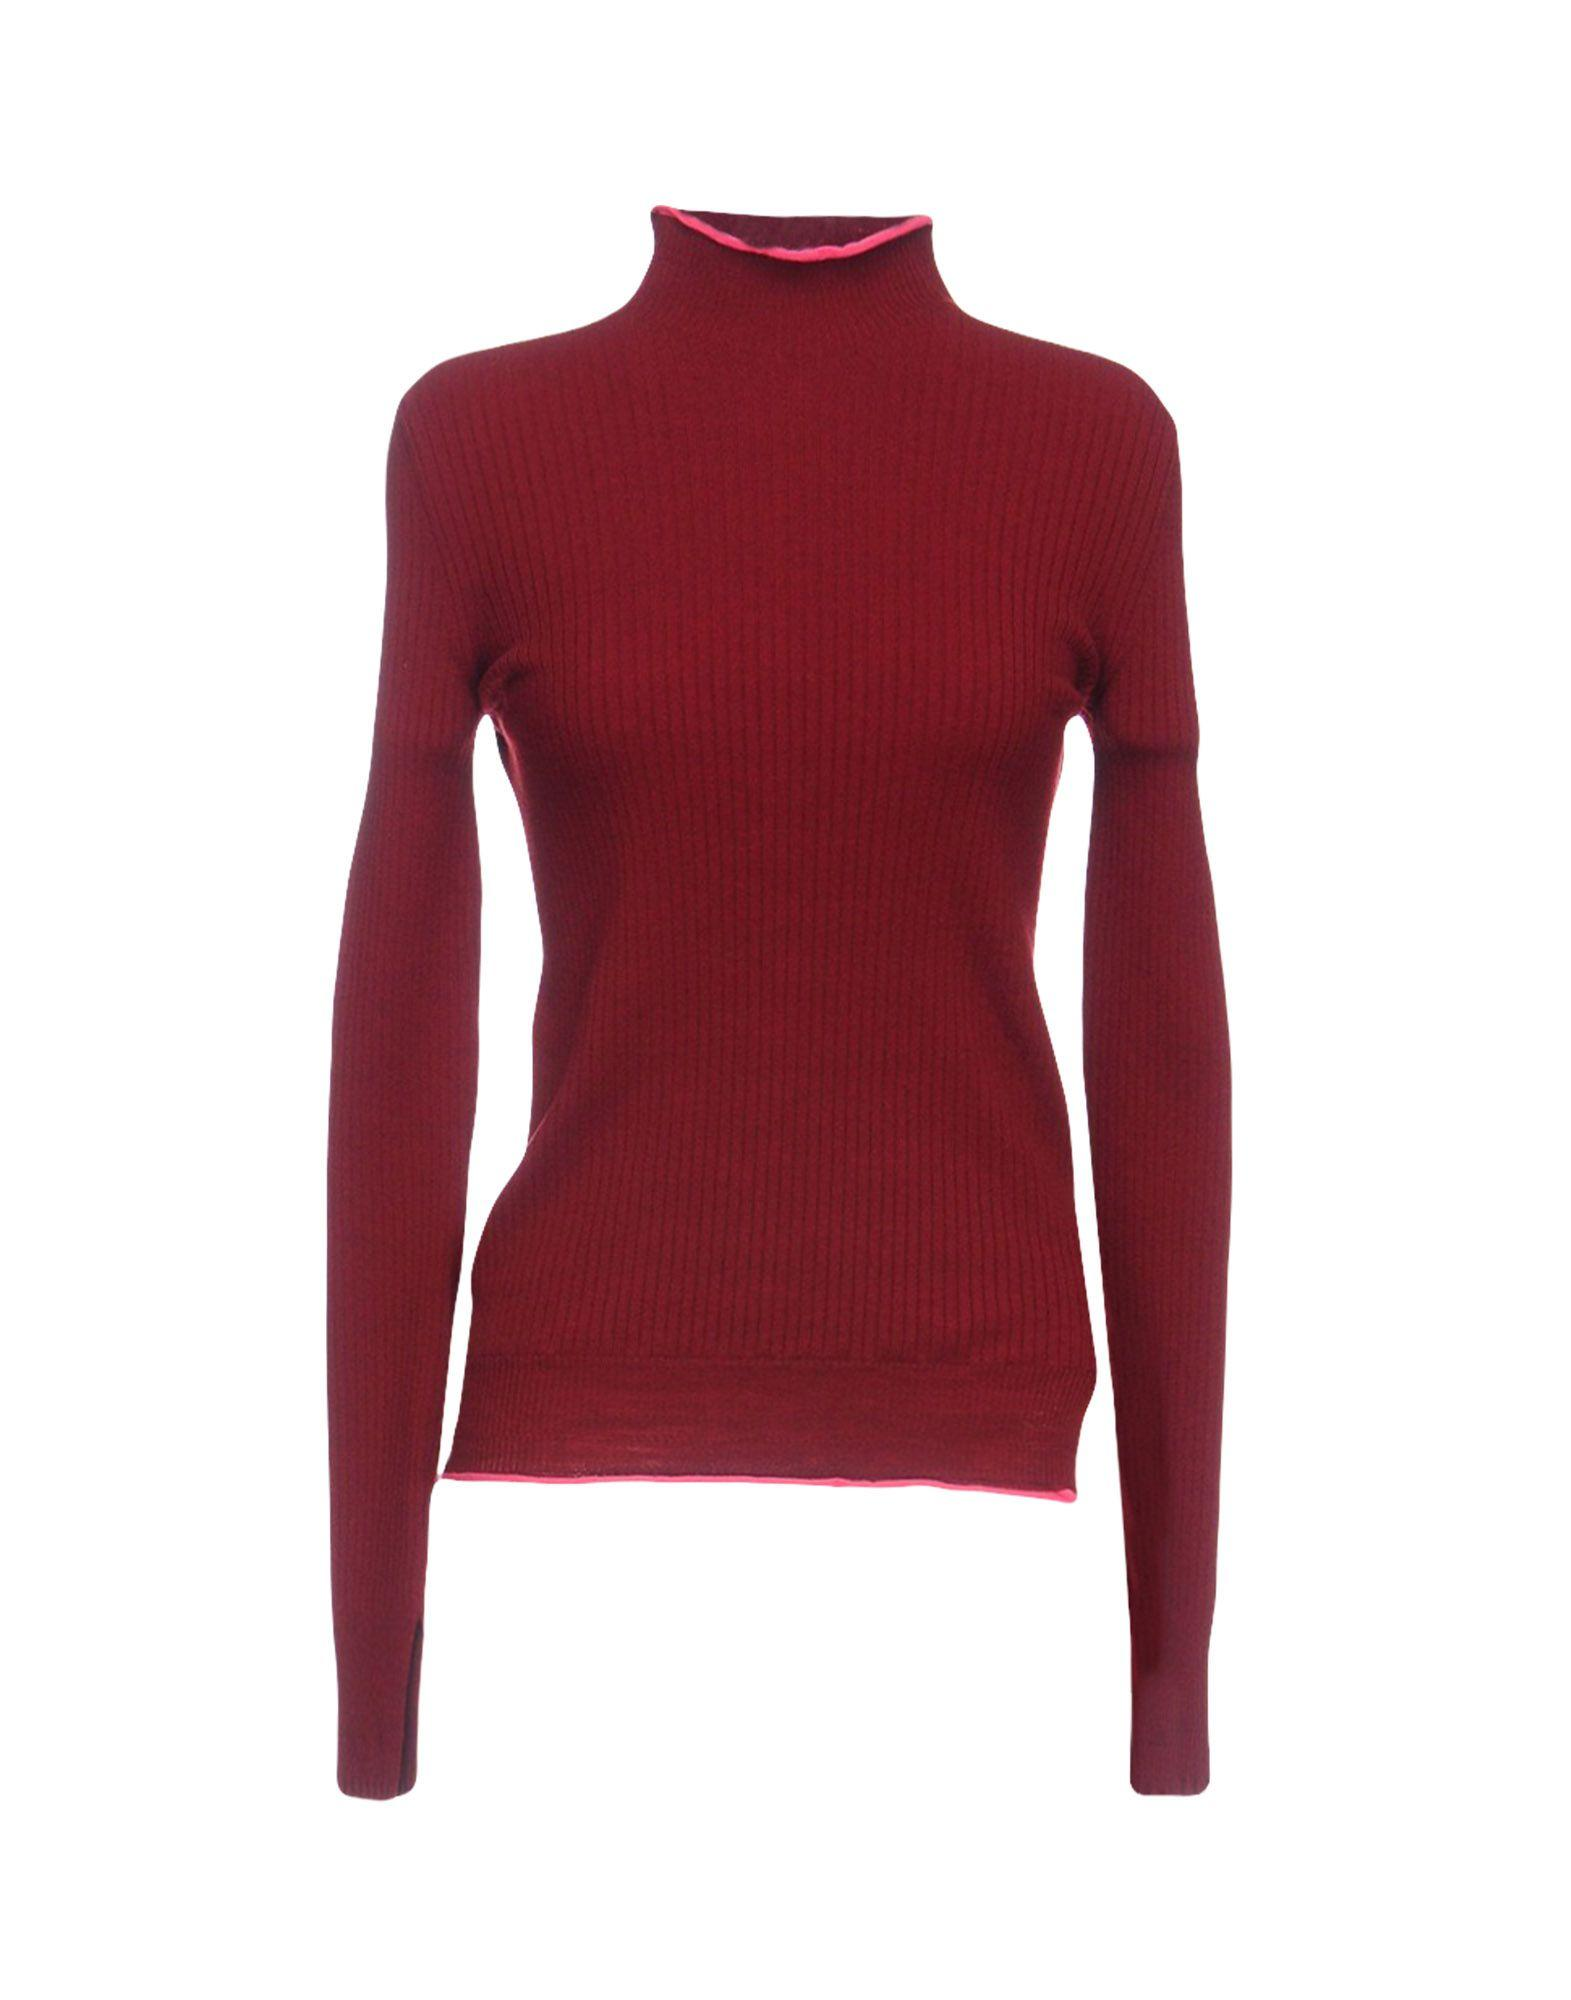 Mrz Turtleneck In Maroon